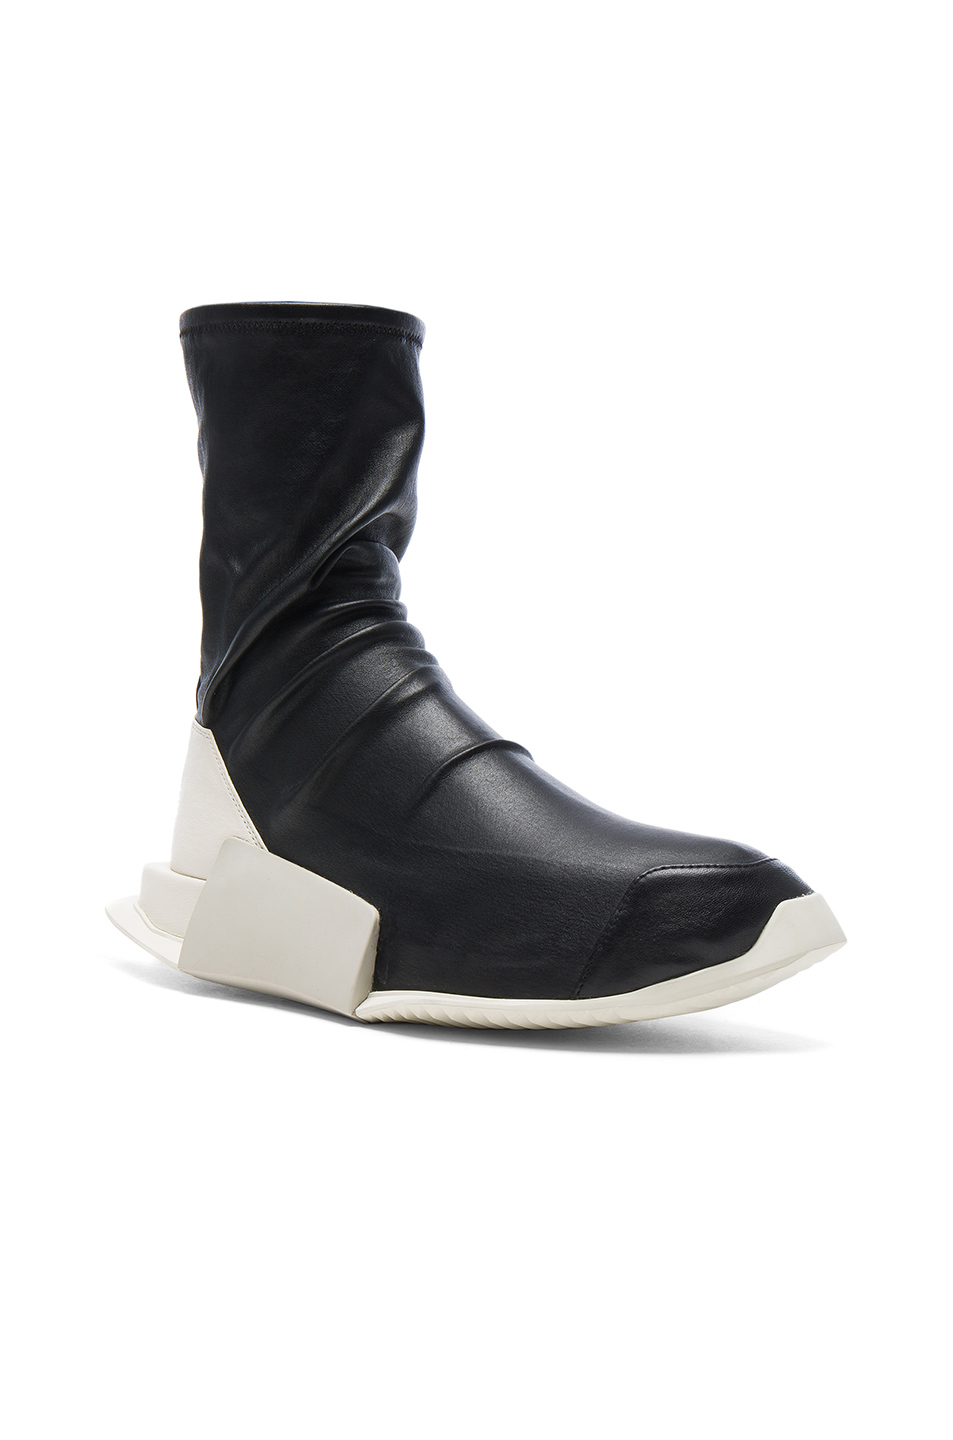 Photo of Rick Owens x Adidas Level Stretch Leather Socks in Black - shop Rick Owens menswear